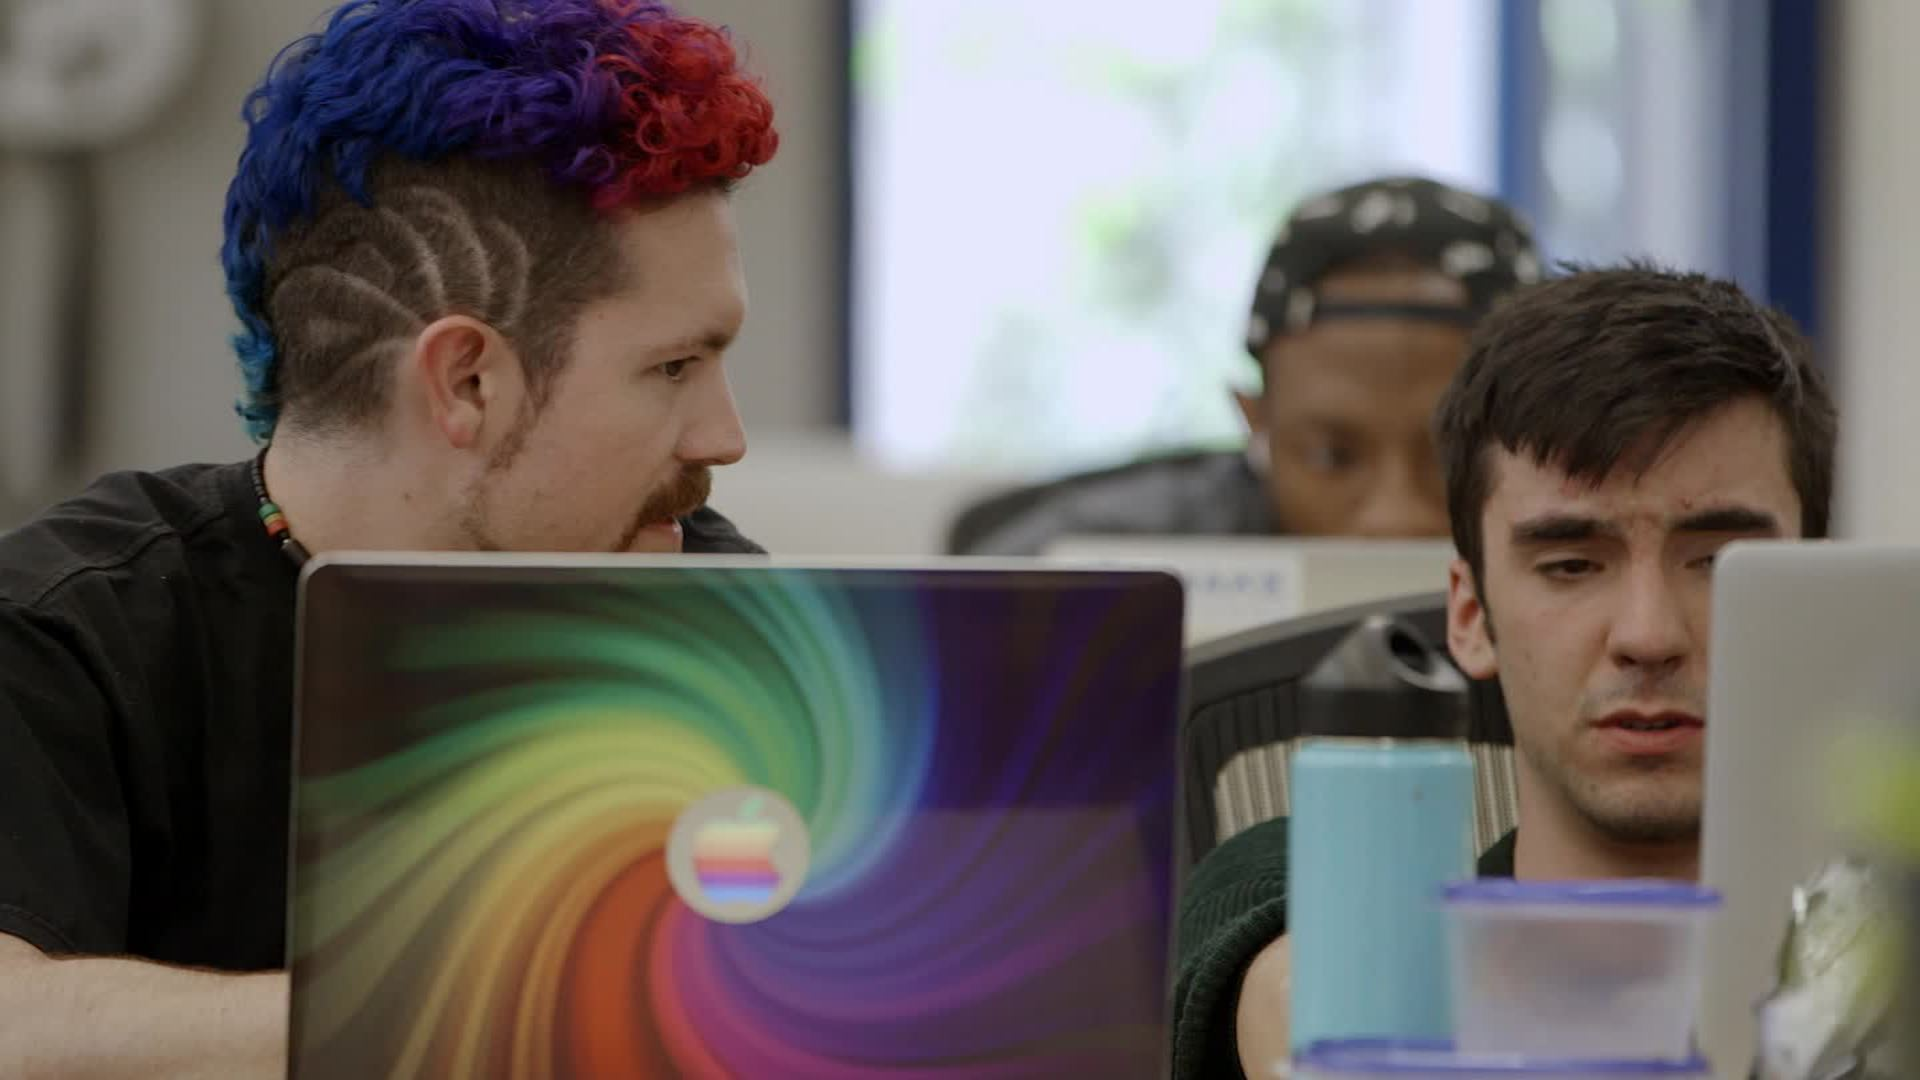 Inside The Startup College For Silicon Valley Hackers Cnn Video